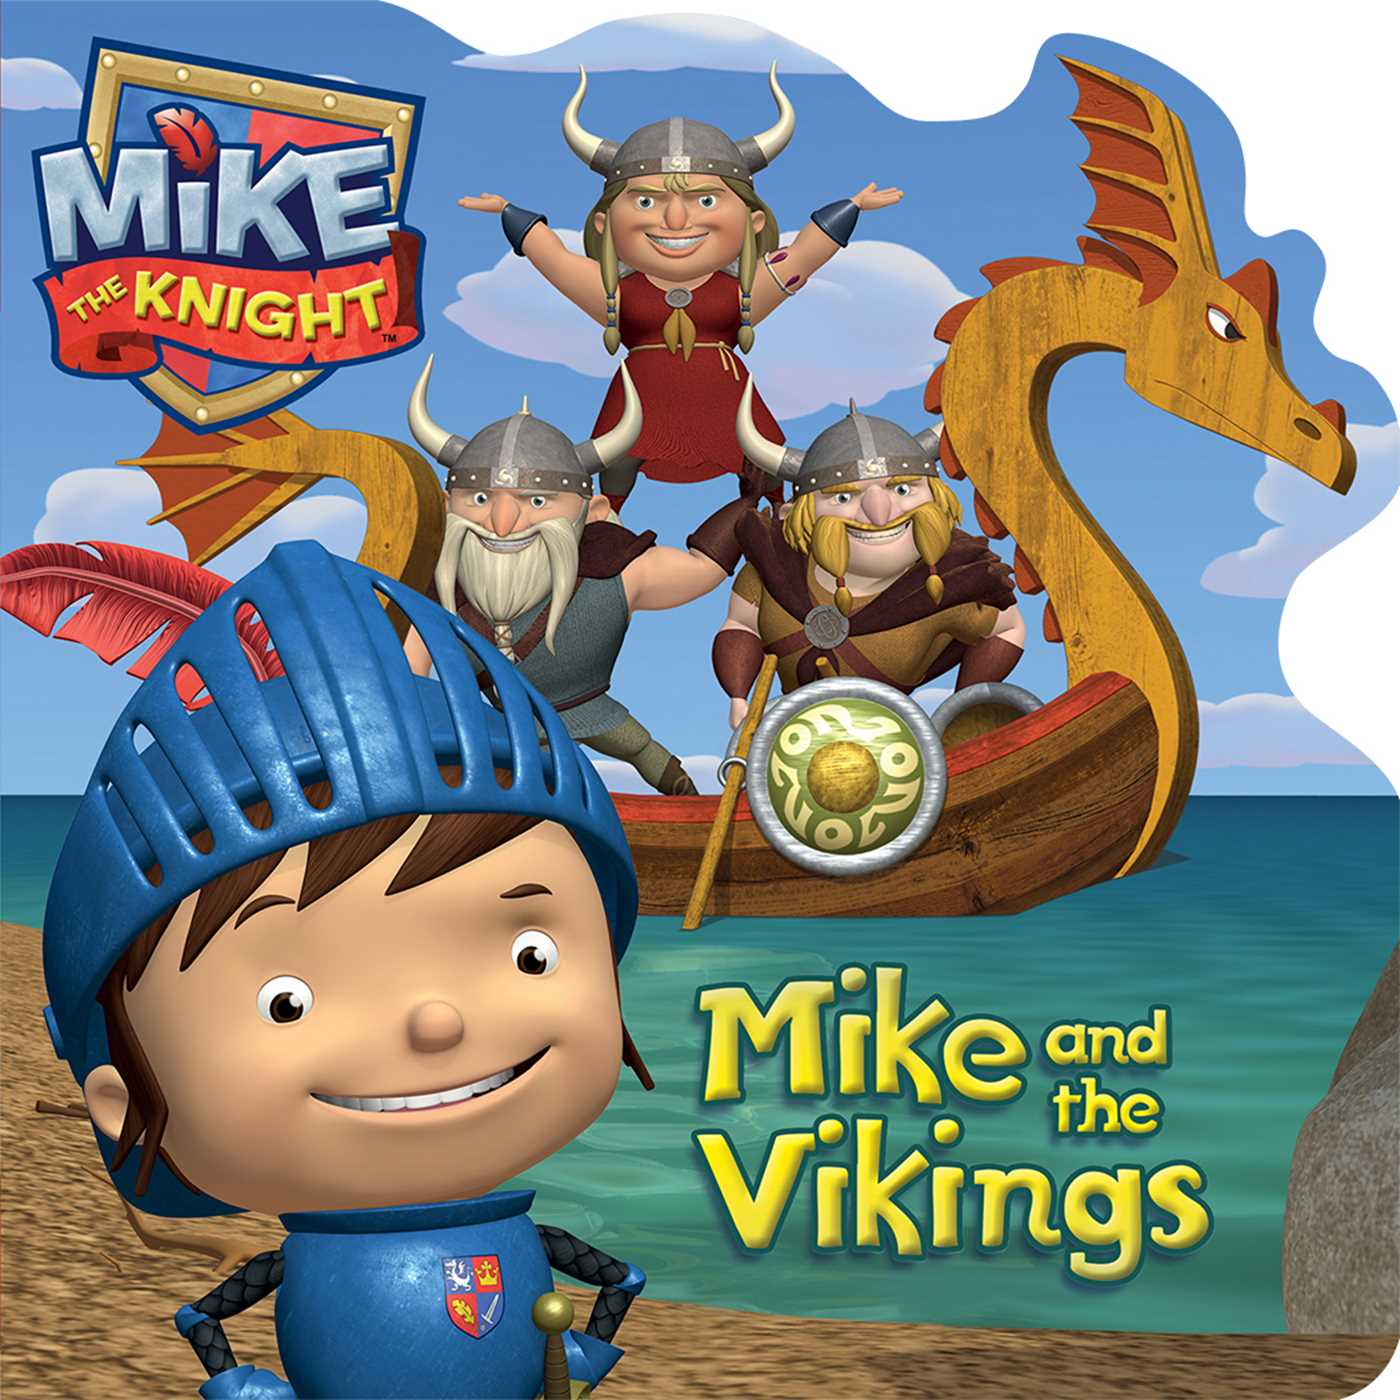 Mike-and-the-vikings-9781481417730_hr